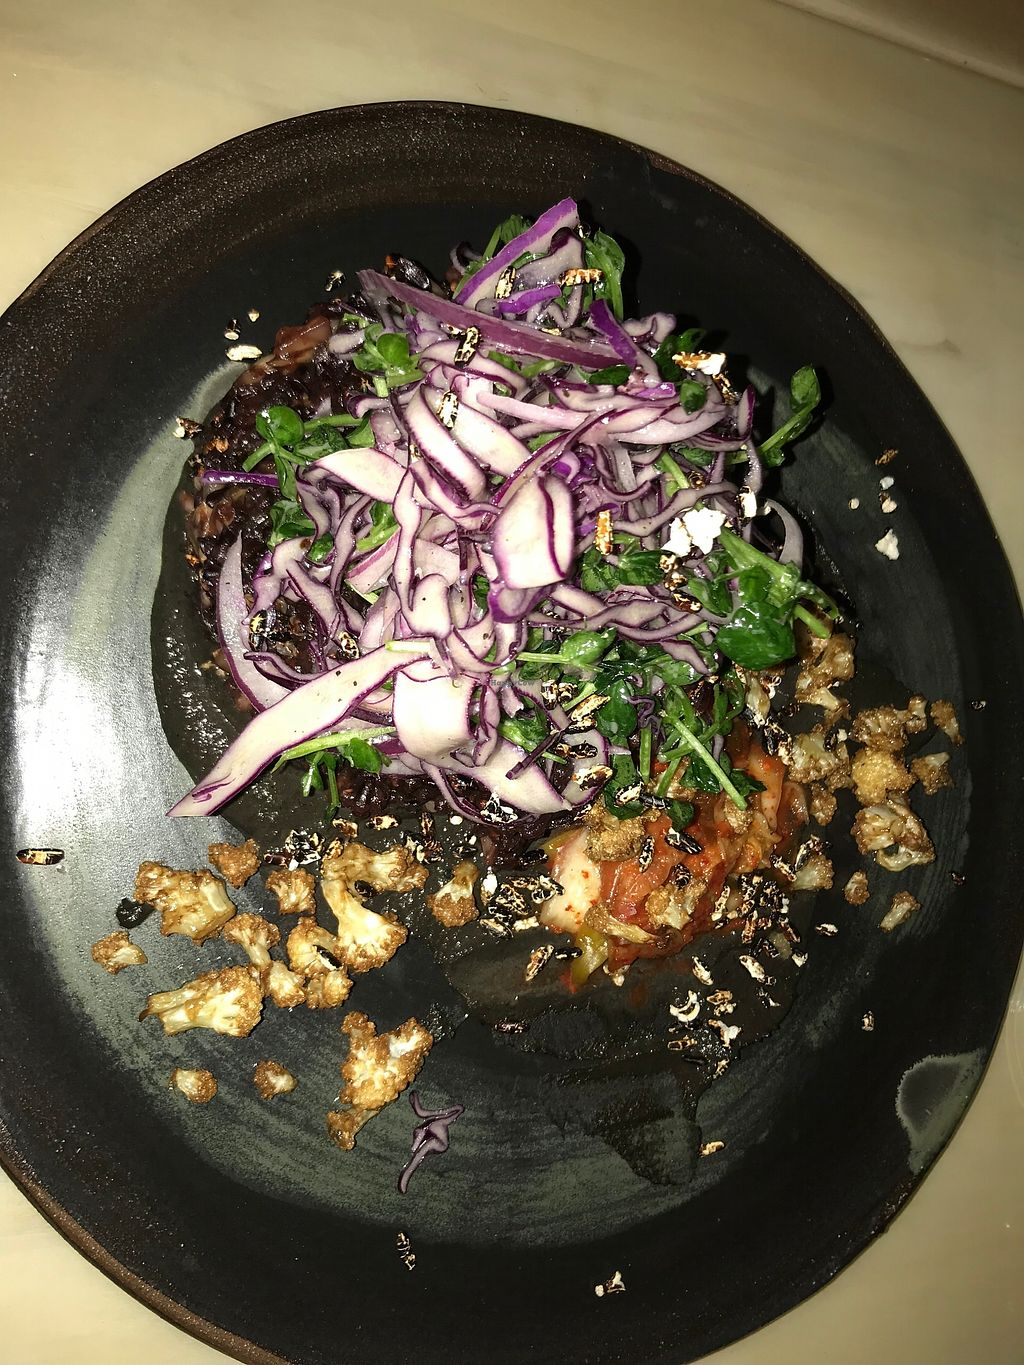 """Photo of The Acorn  by <a href=""""/members/profile/arisberna"""">arisberna</a> <br/>kimchi with rice and mushroom <br/> January 11, 2018  - <a href='/contact/abuse/image/32348/345572'>Report</a>"""